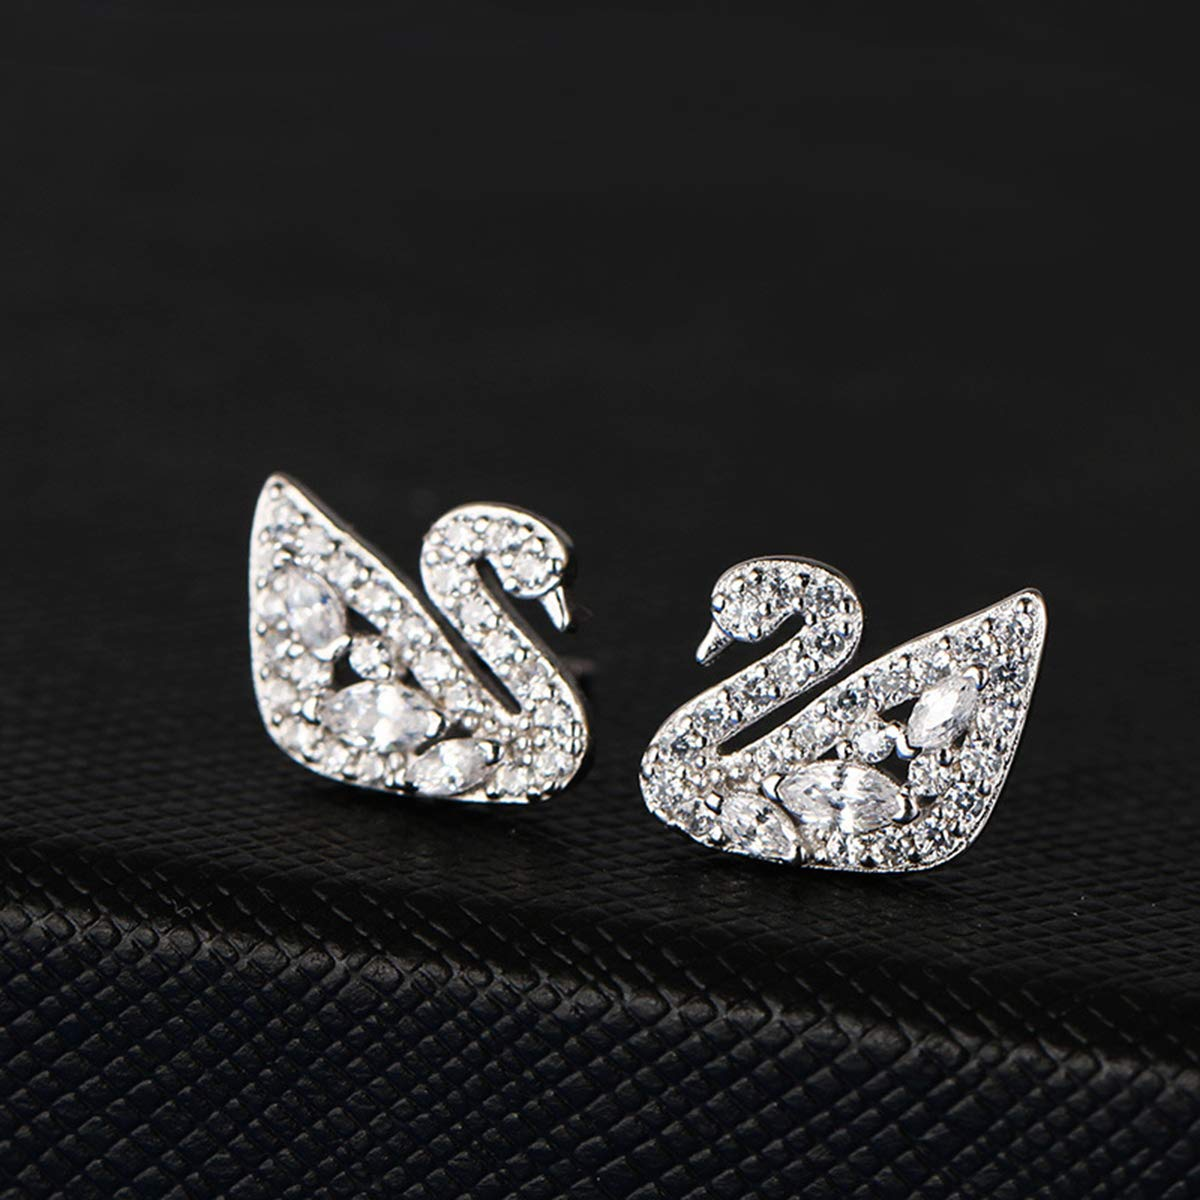 Silver Libaraba Crystal Accent Filigree Bird Swan Stud Earrings with Jewelry Box,Swan Earrings for Women